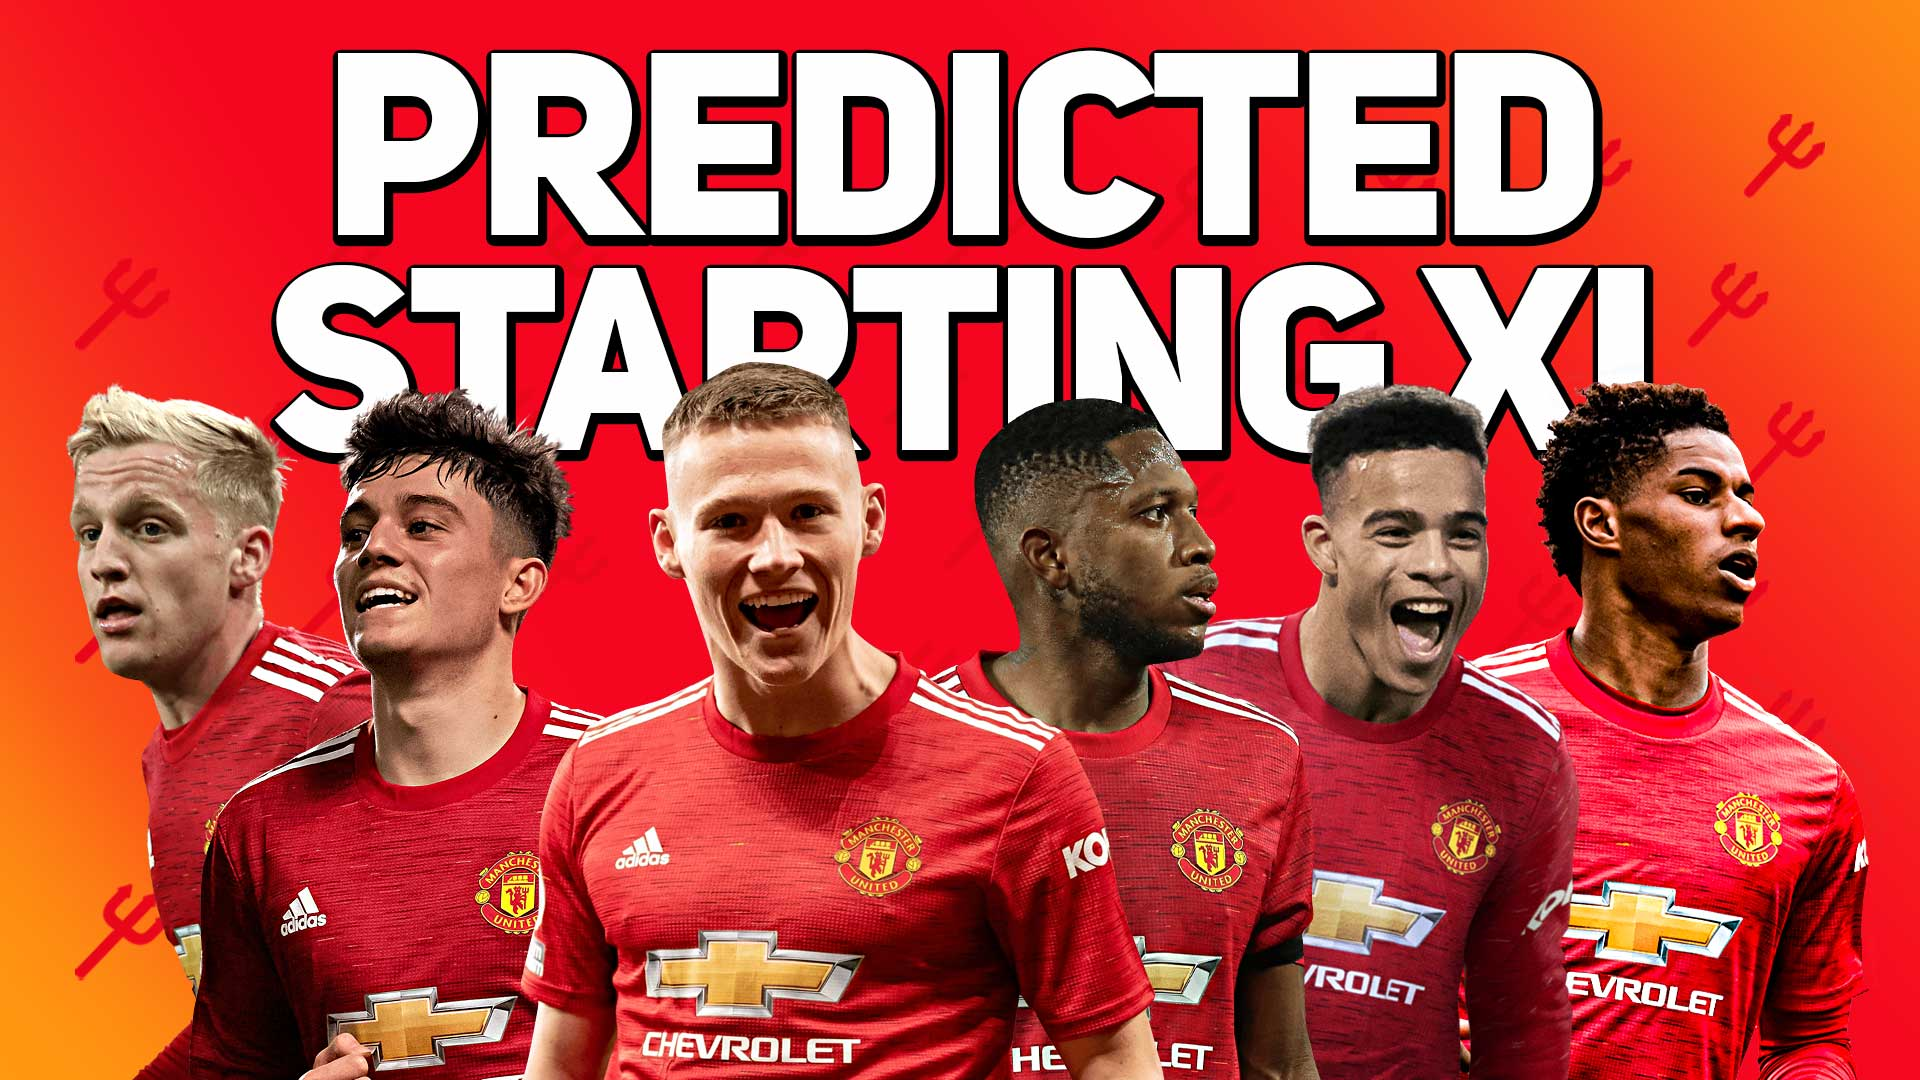 Predicted Starting Xi Liverpool Vs Manchester United The United Stand